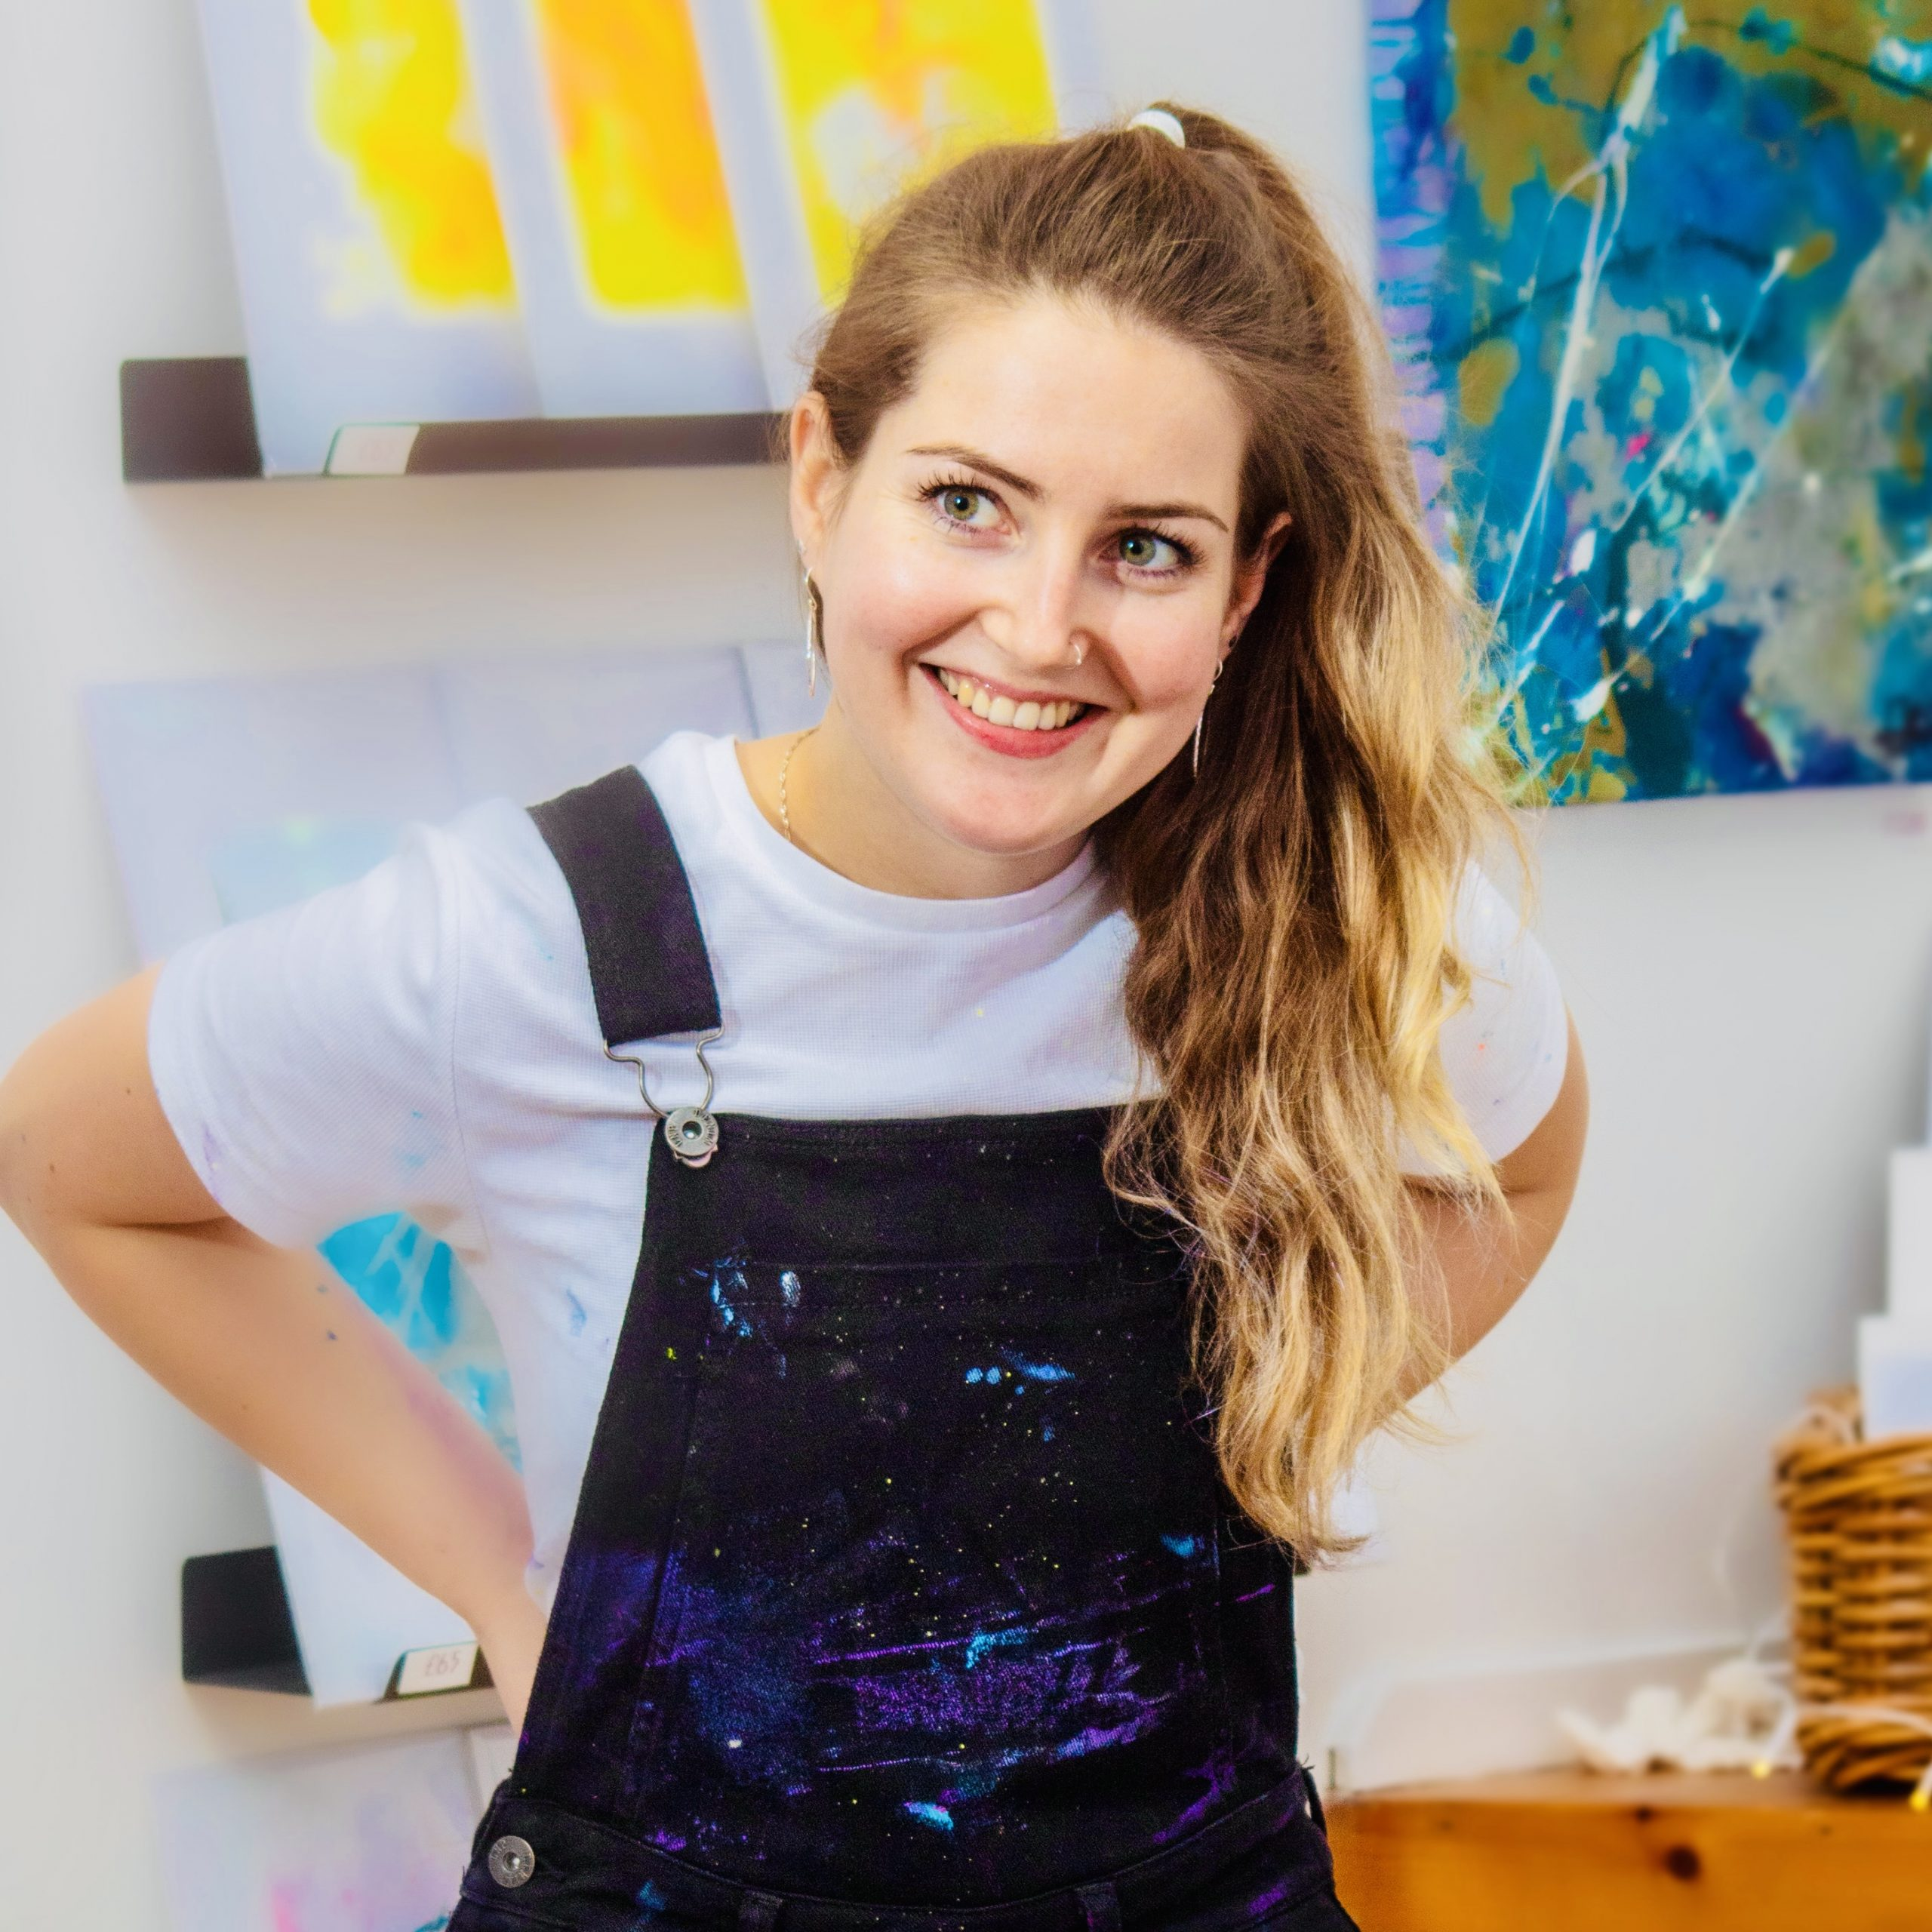 profile image of Kayleigh with bright and colourful paintings behind her.